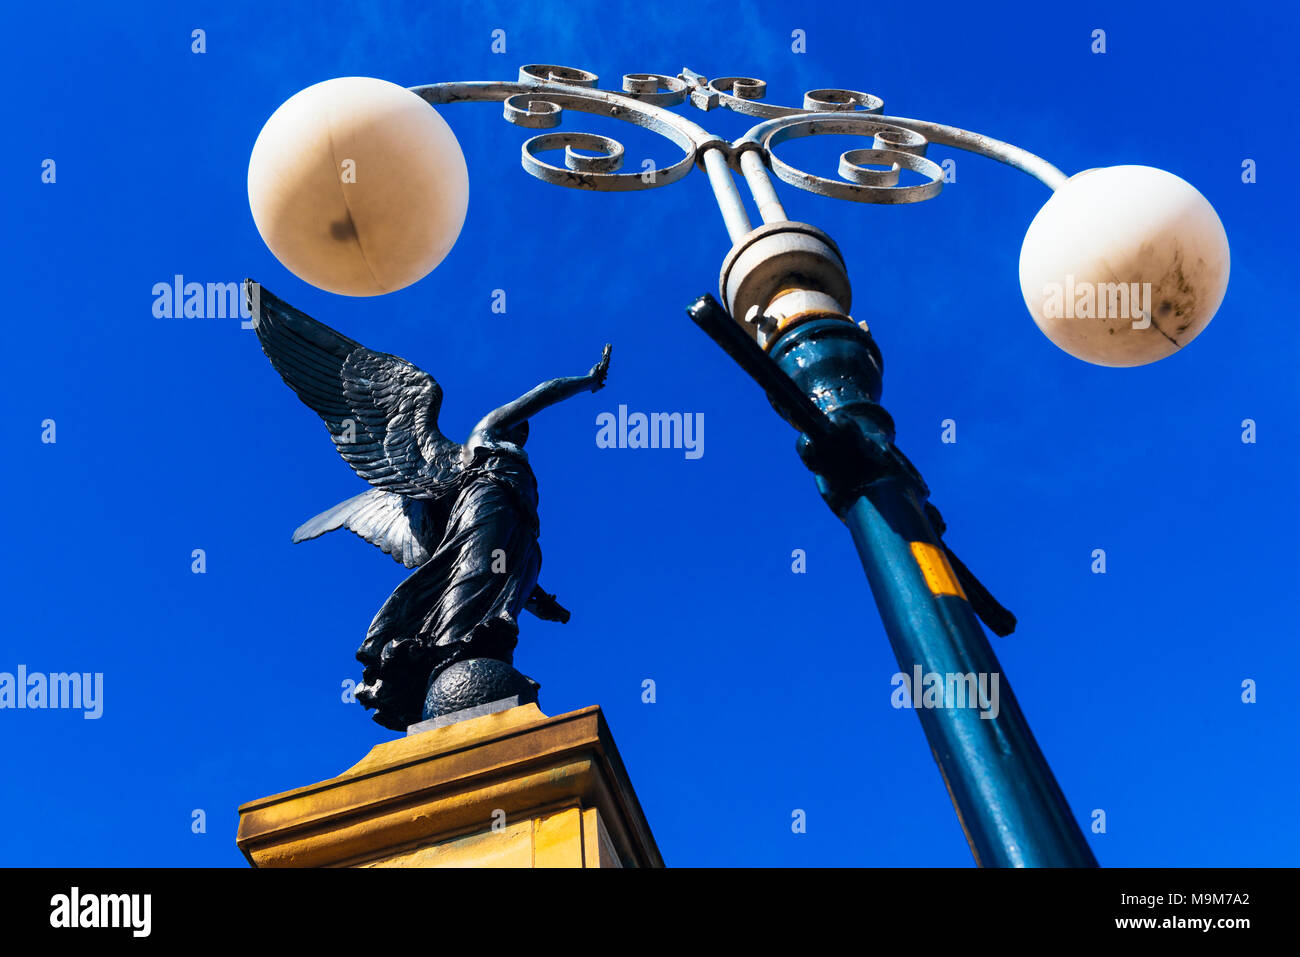 Five Lamps War Memorial, Waterloo with Seaforth, Crosby, Merseyside, England - Stock Image